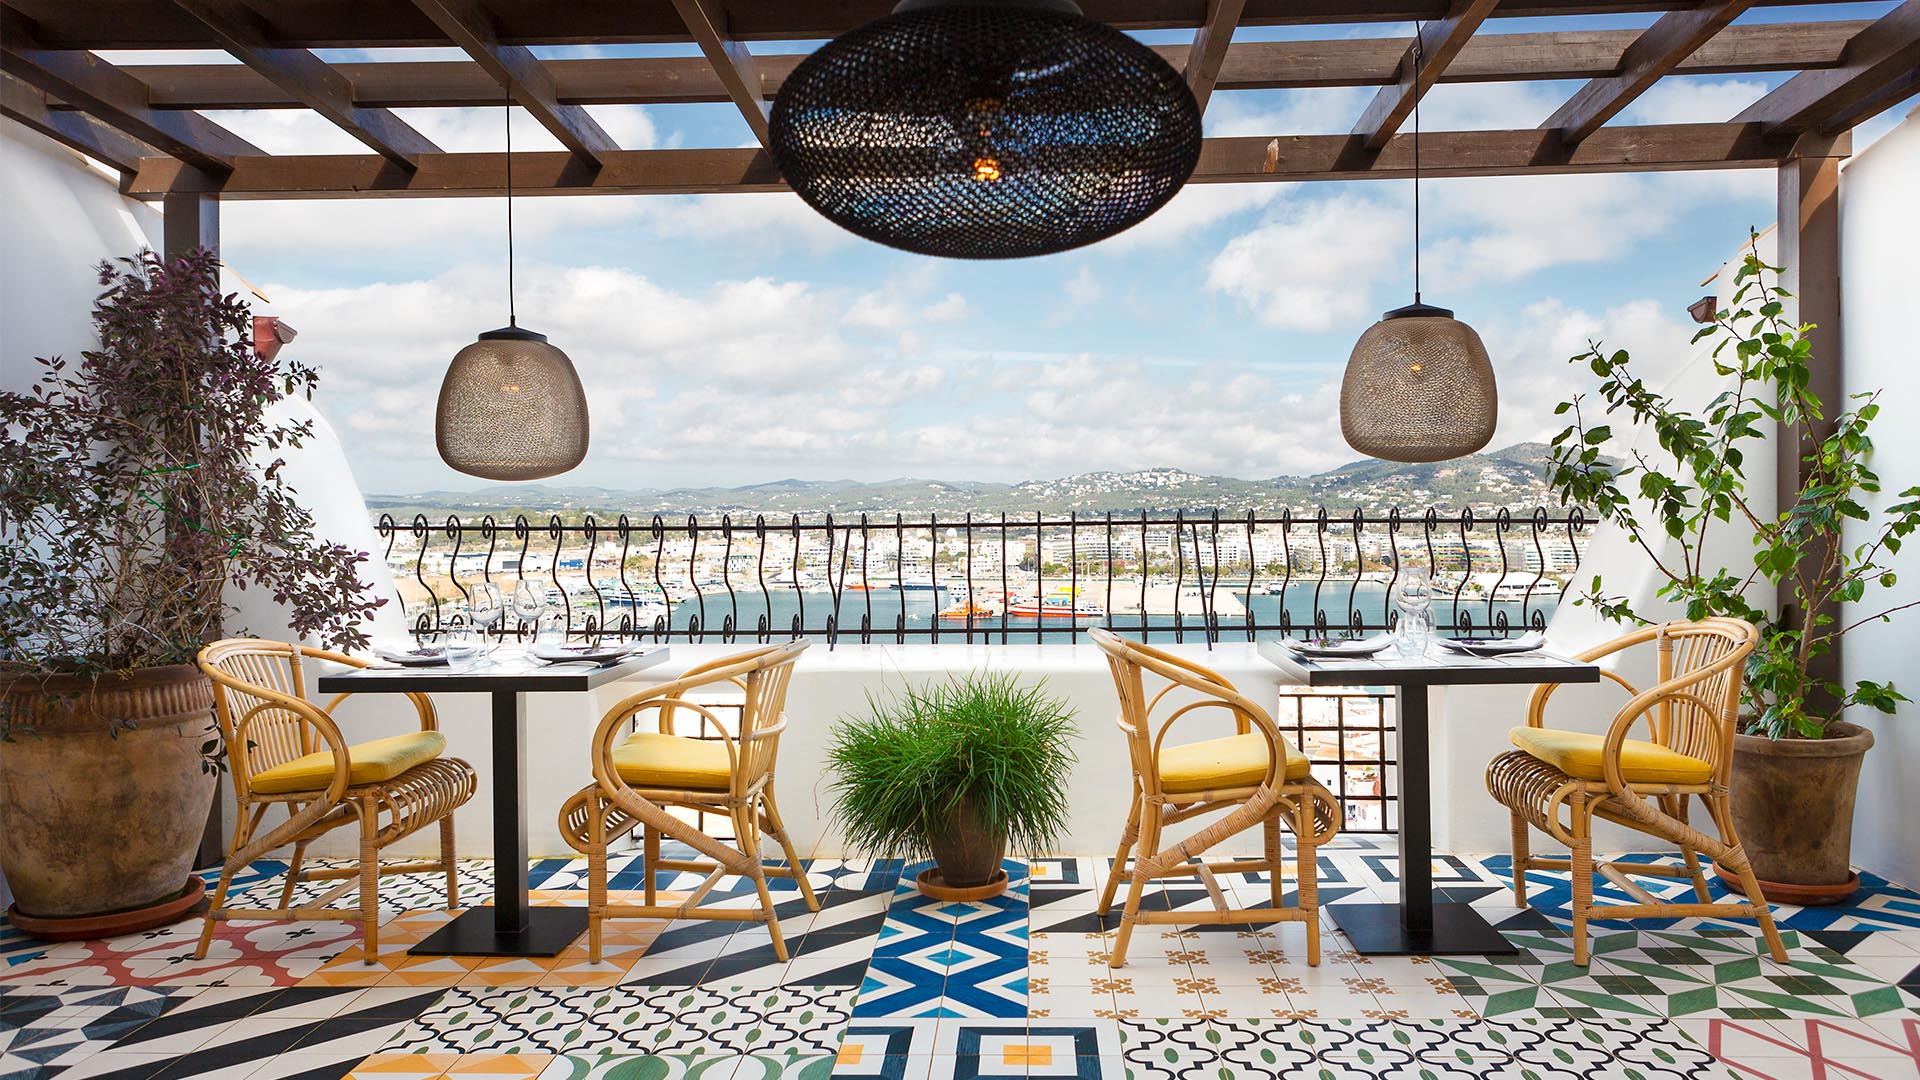 March Hot List: 5 new hotels to have on your radar